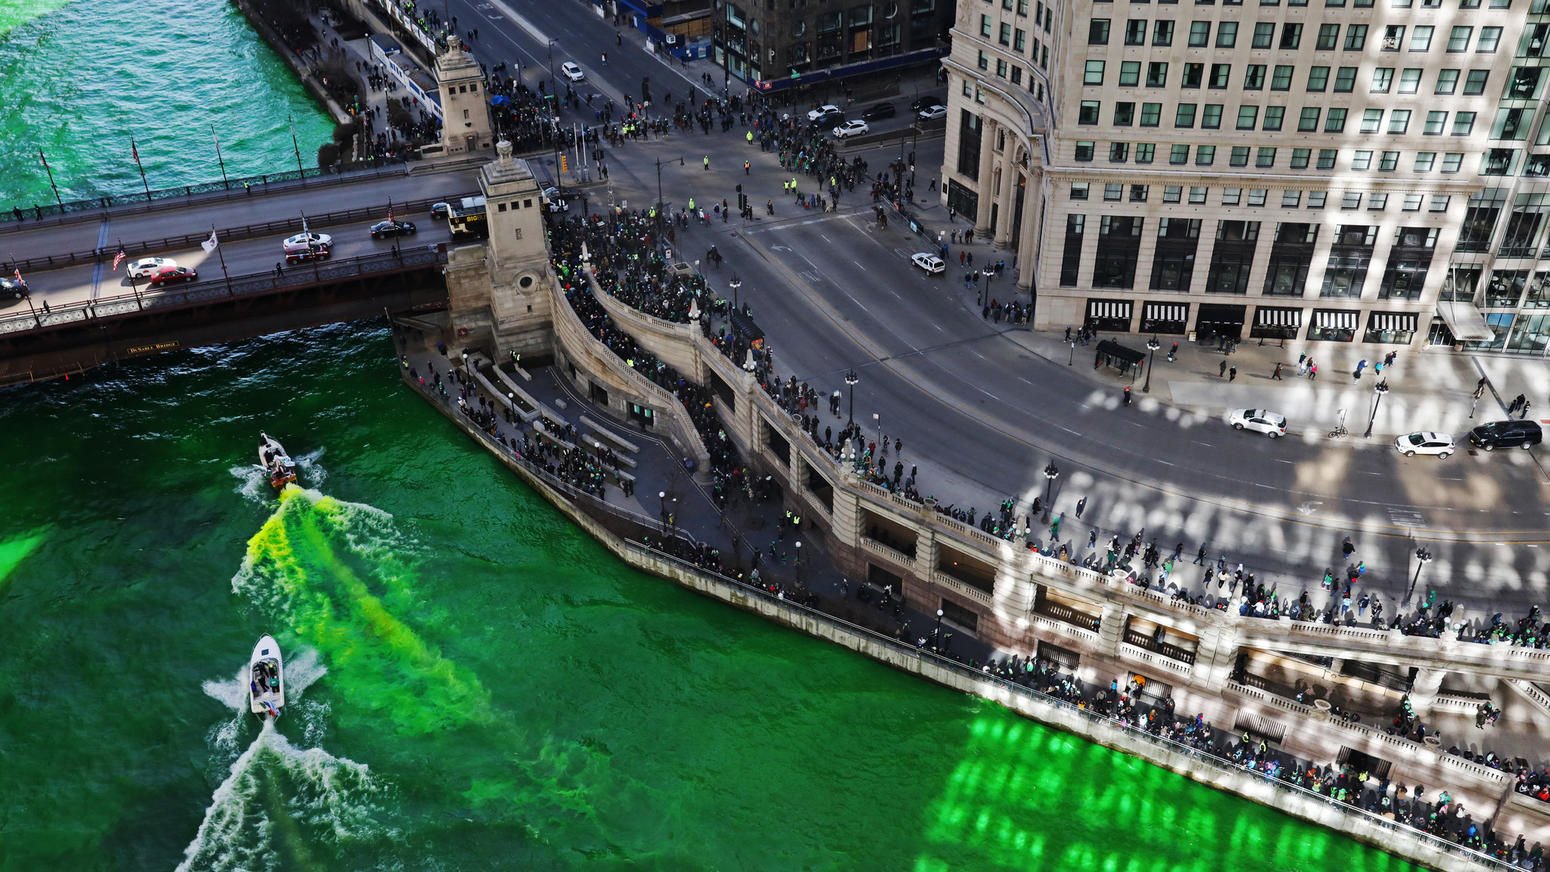 ct-st-patricks-day-celebrations-in-chicago-pho-011